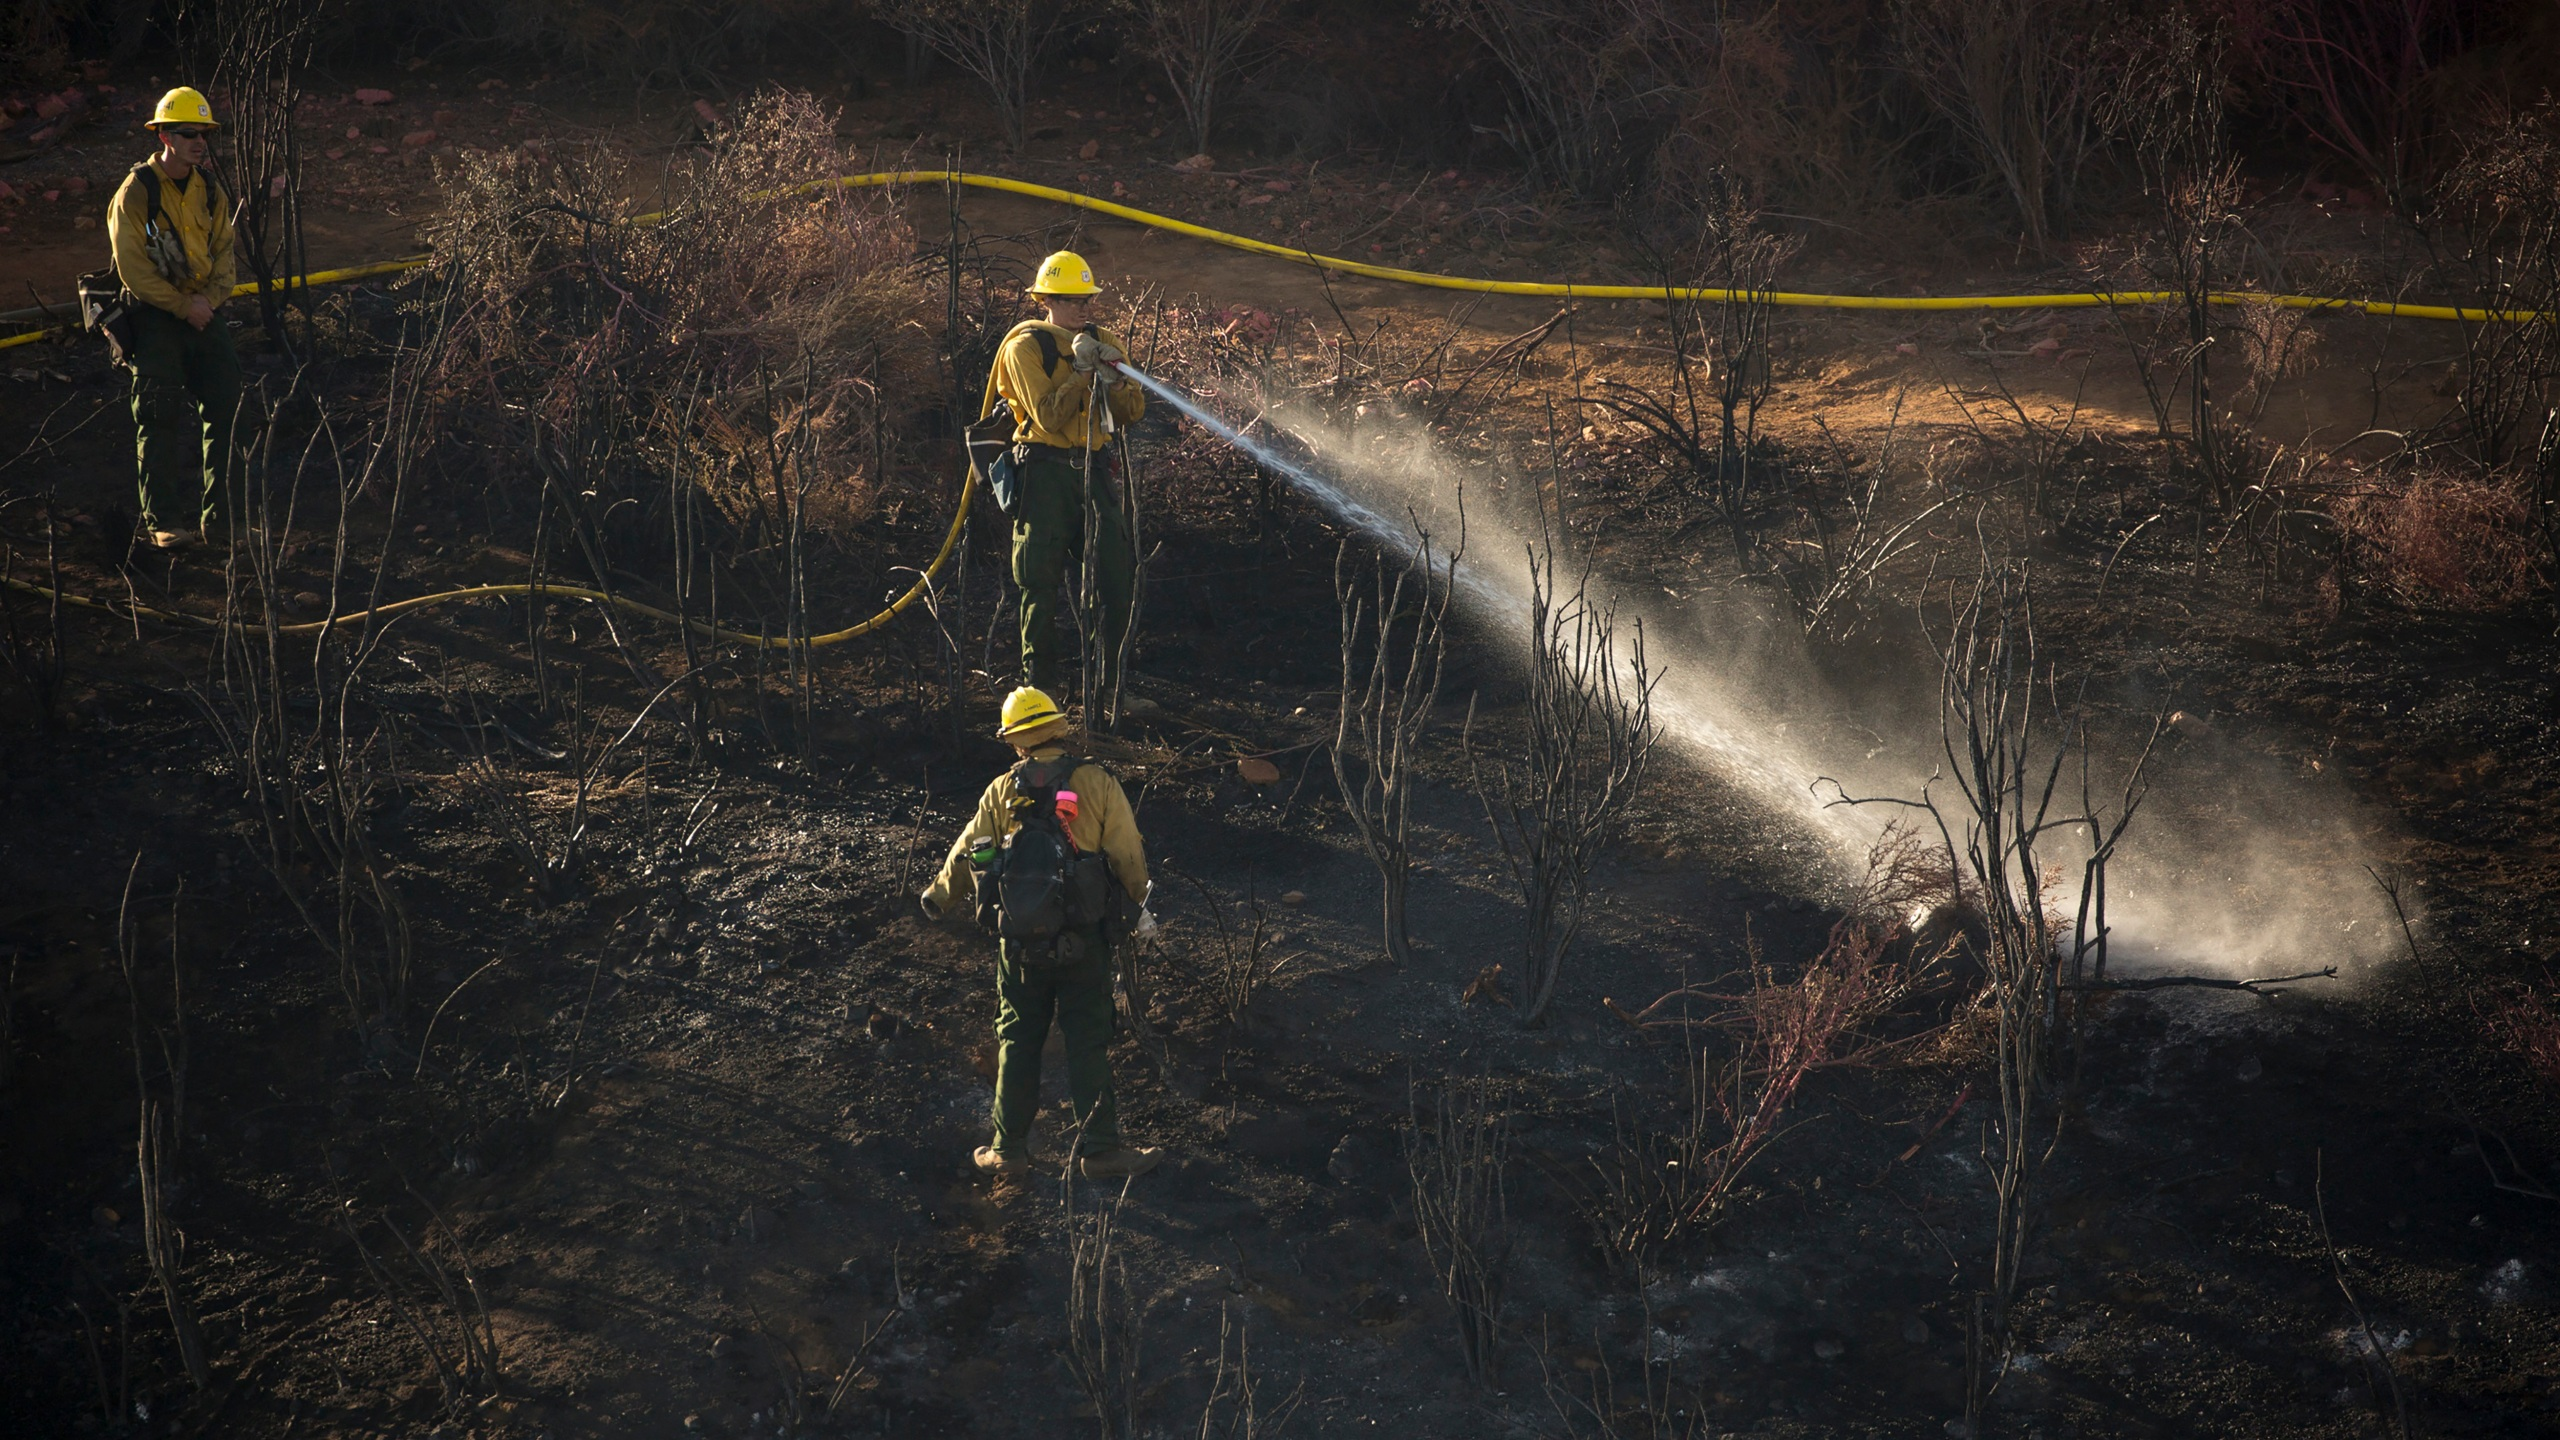 Hand crews work on the remaining hot spots from a brush fire at the Apple Fire in Cherry Valley, Calif., Saturday, Aug. 1, 2020. (AP Photo/Ringo H.W. Chiu)